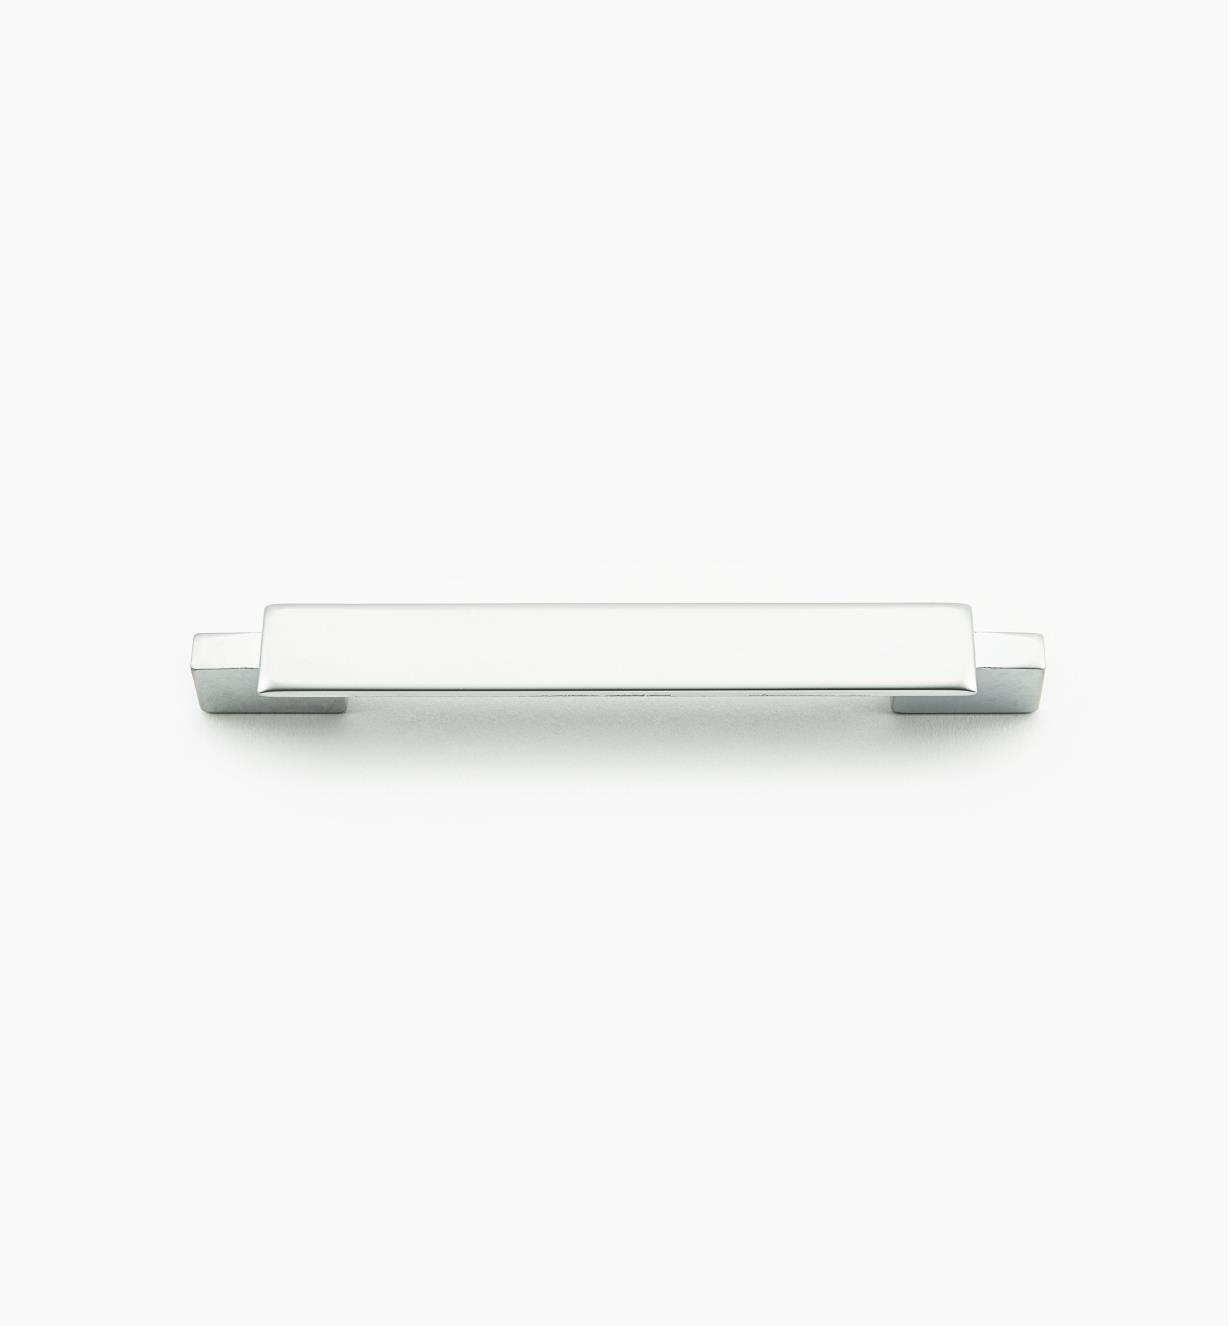 01G1844 - Bridge Hardware - 96mm x 135mm Matte Chrome Handle